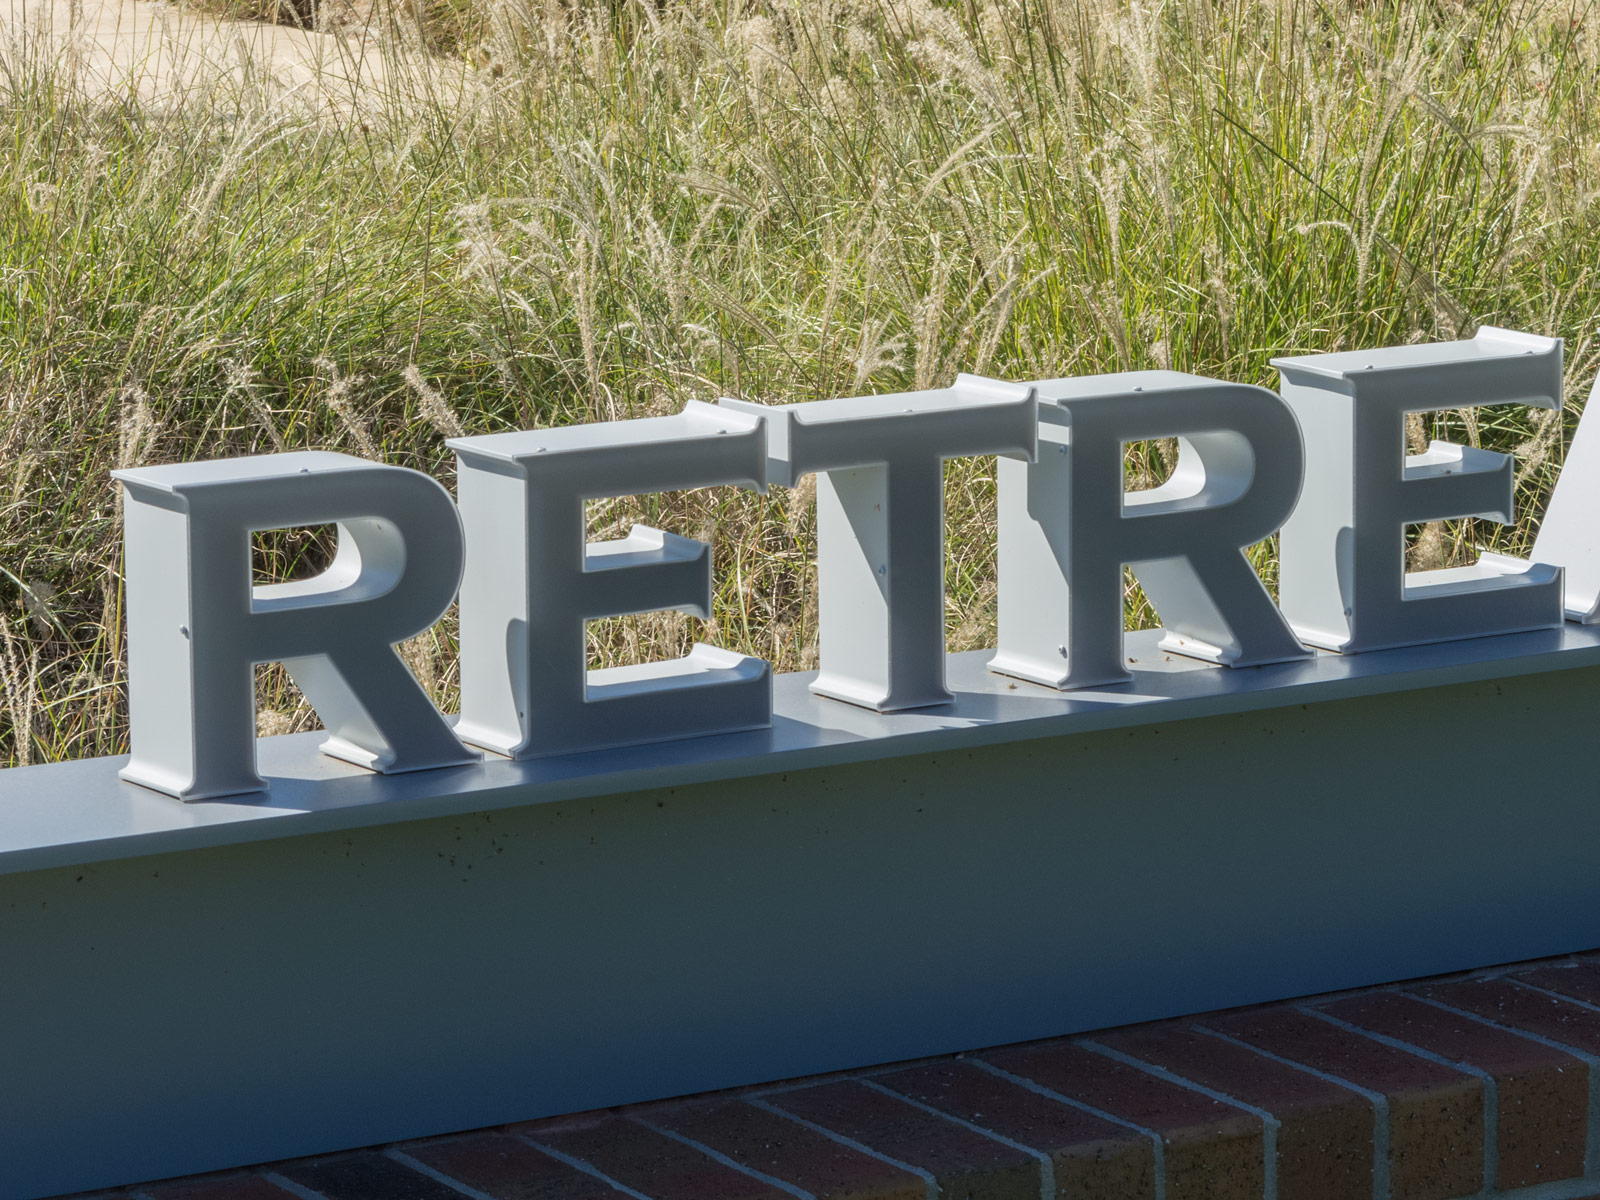 Close up view of fabricated aluminum accent structure with custom, free-standing illuminated channel letters with 3Form faces.